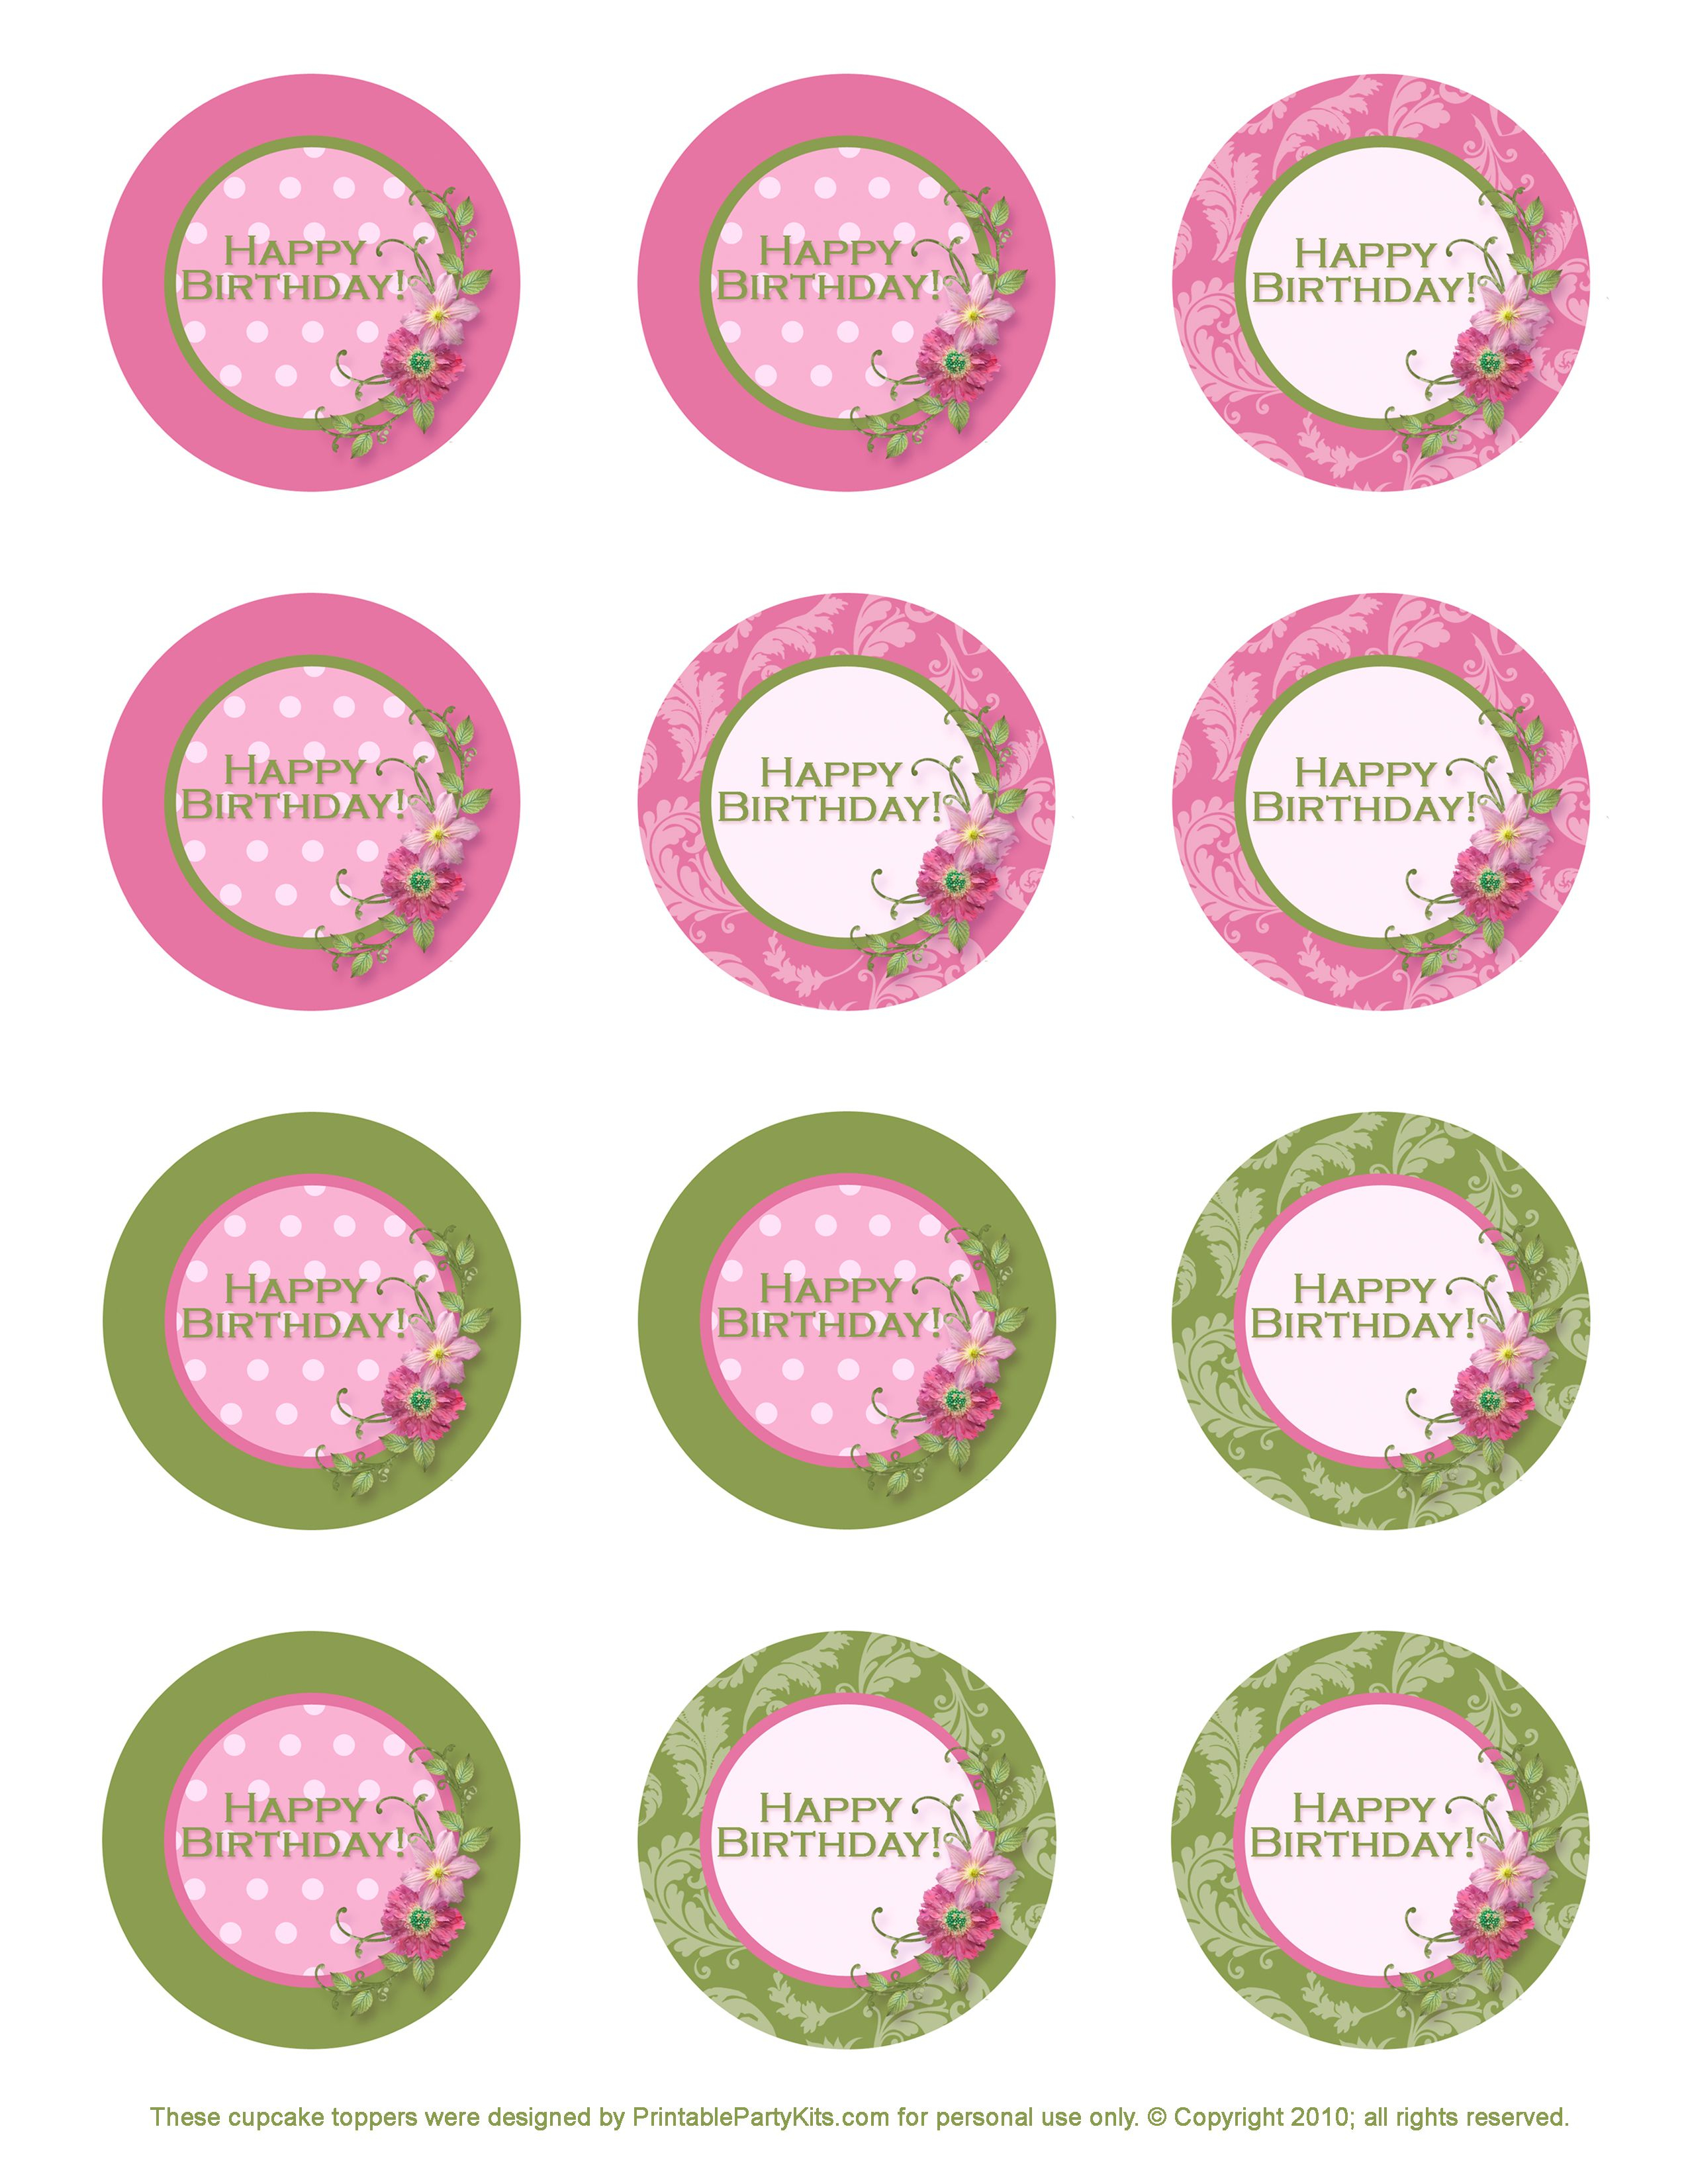 Free Printable Birthday Cupcake Toppers | Crafts | Pinterest - Free Printable Cupcake Toppers